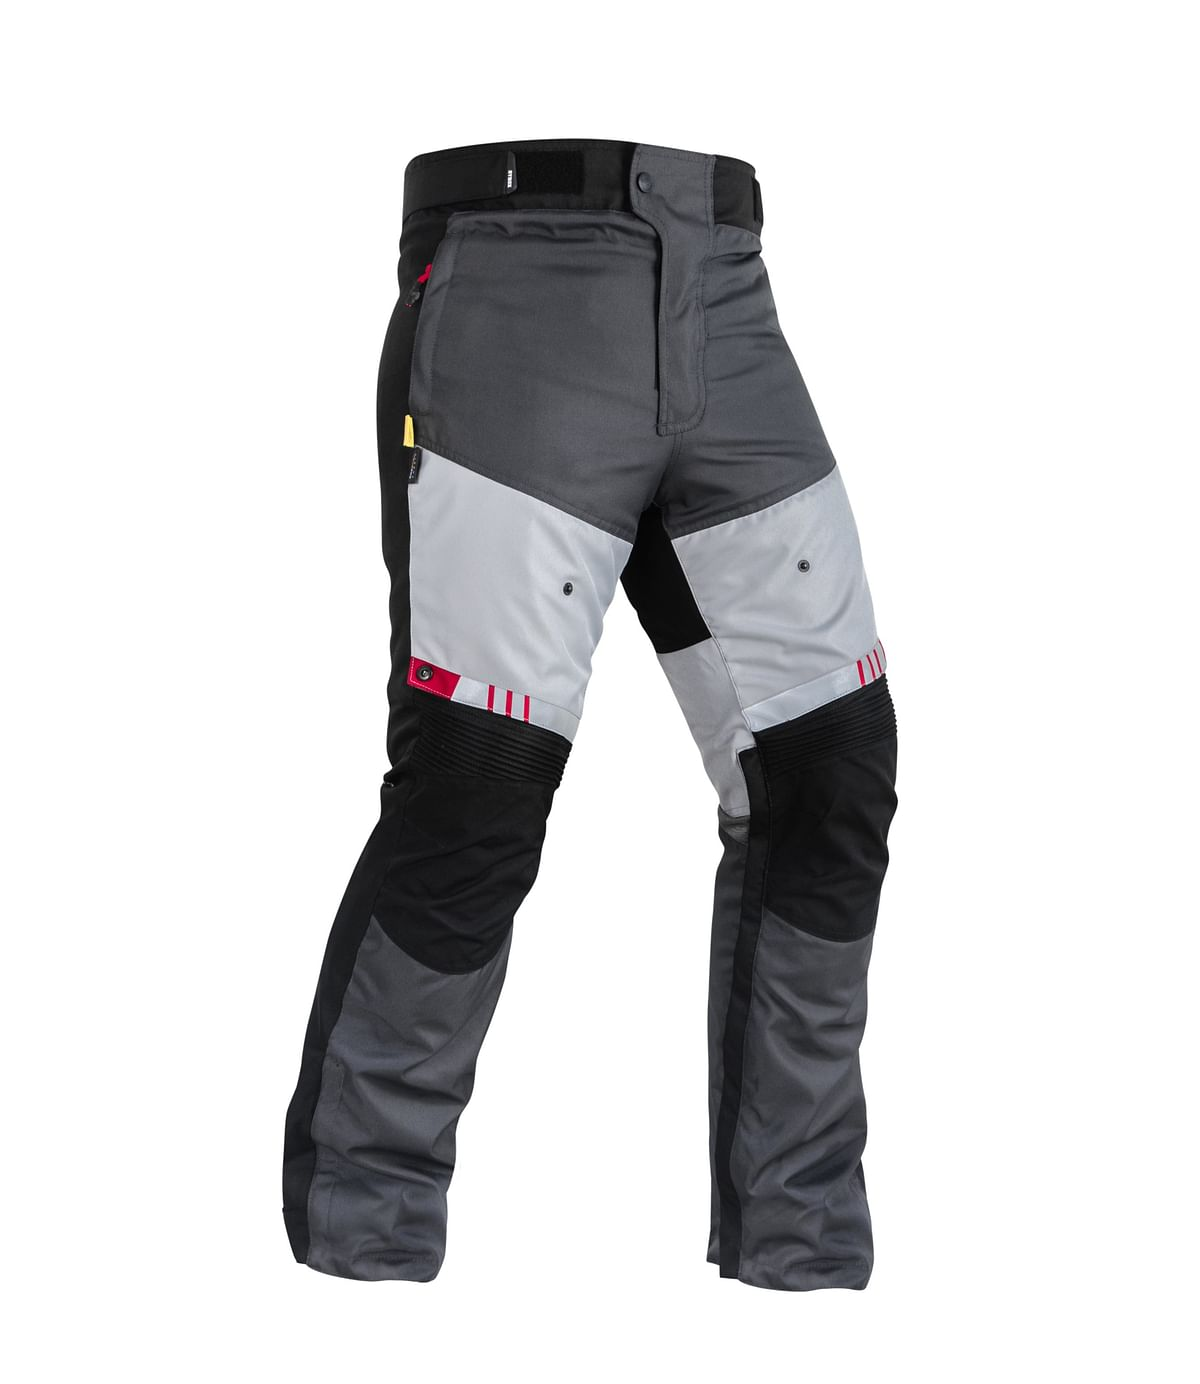 Essential motorcycling gear for the rains